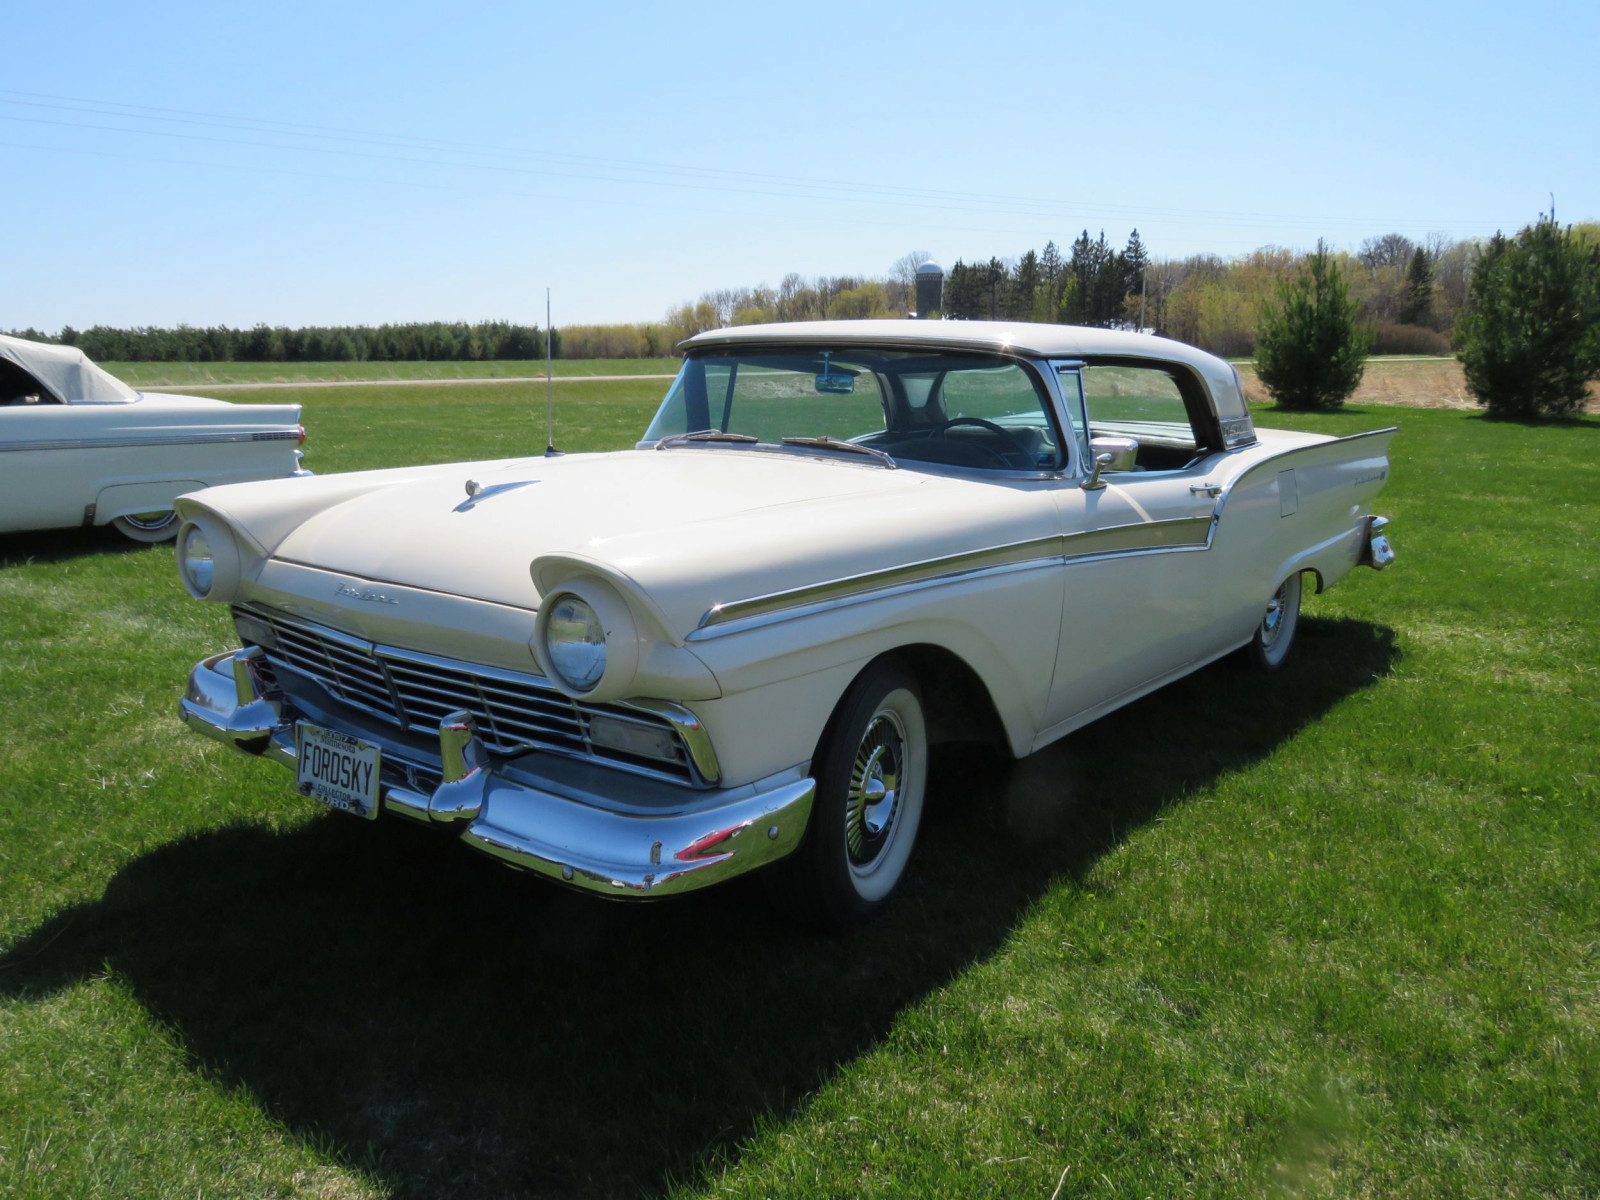 1957 Ford Fairlane 500 Skyliner Retractable Hardtop - Image 1